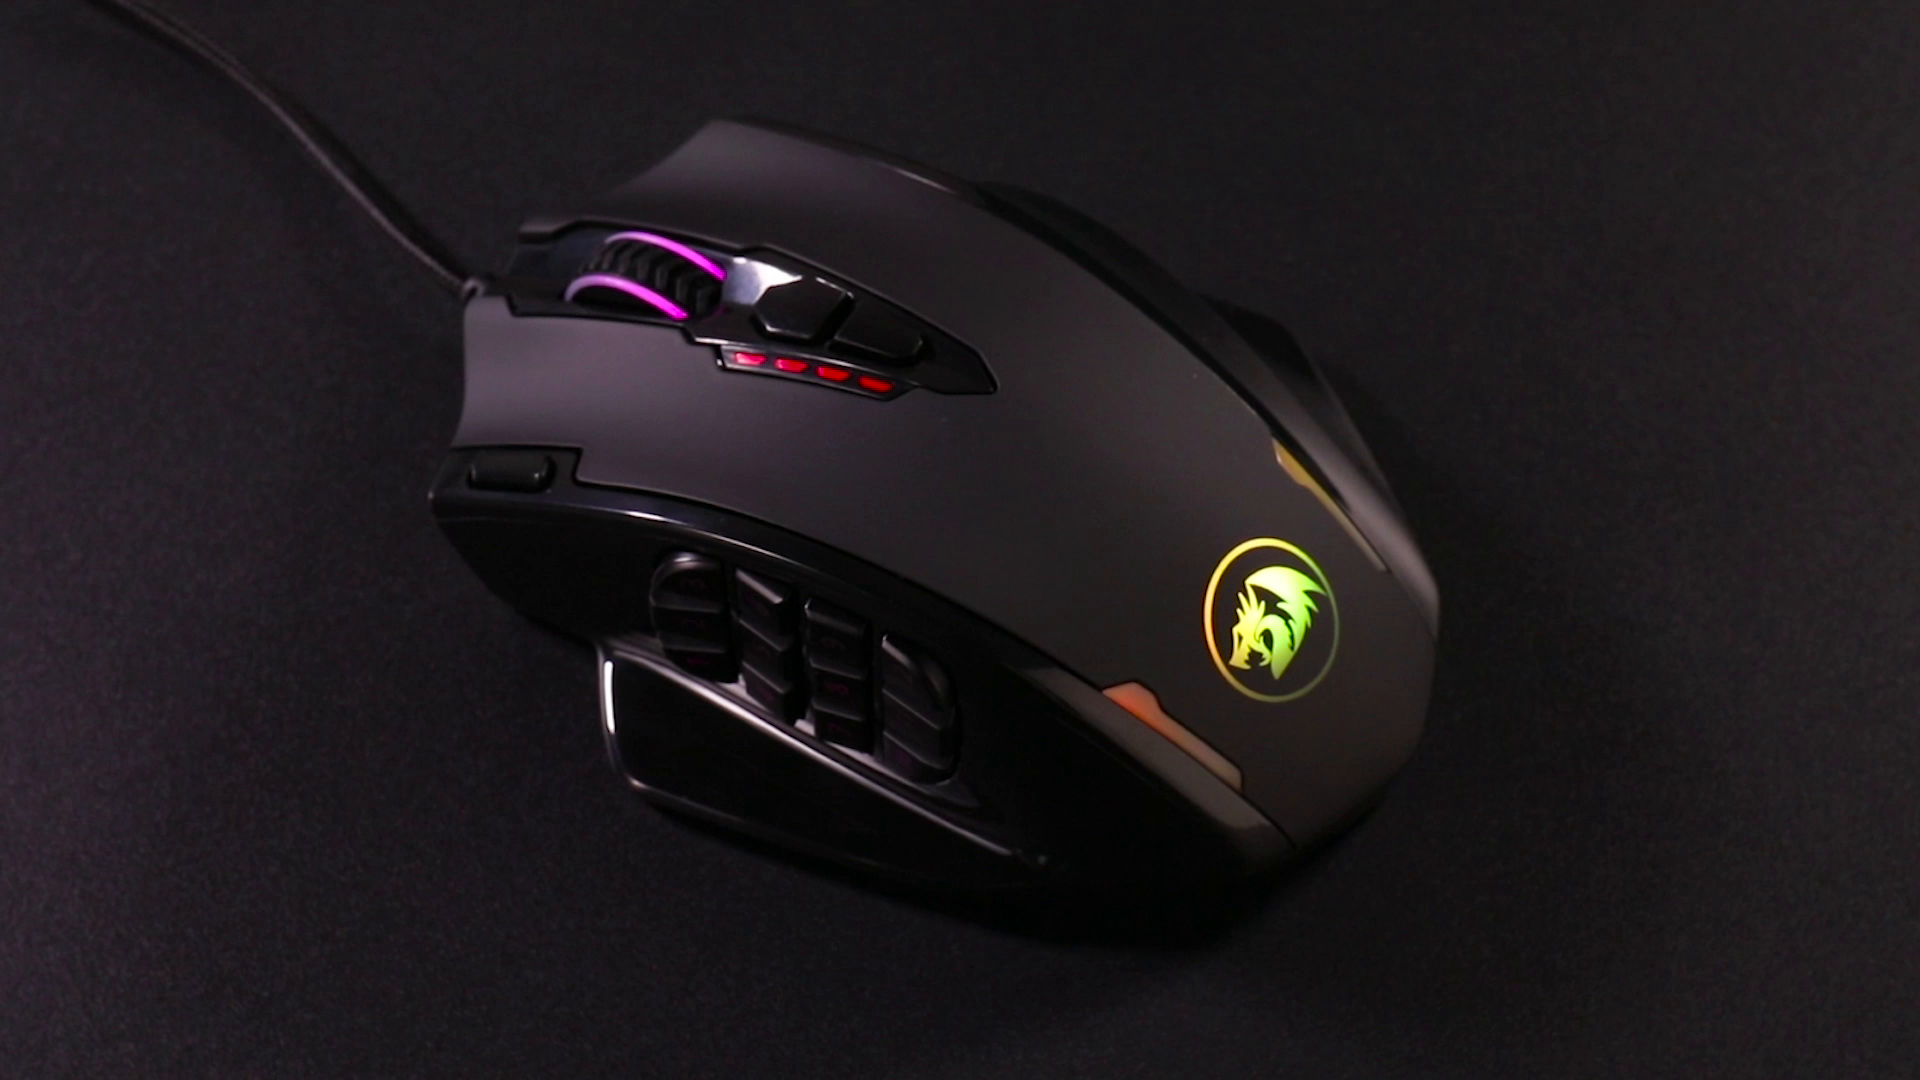 Redragon M908 Impact RGB LED MMO Mouse with Side Buttons Optical Wired Gaming Mouse with 12,400DPI, High Precision, 19…